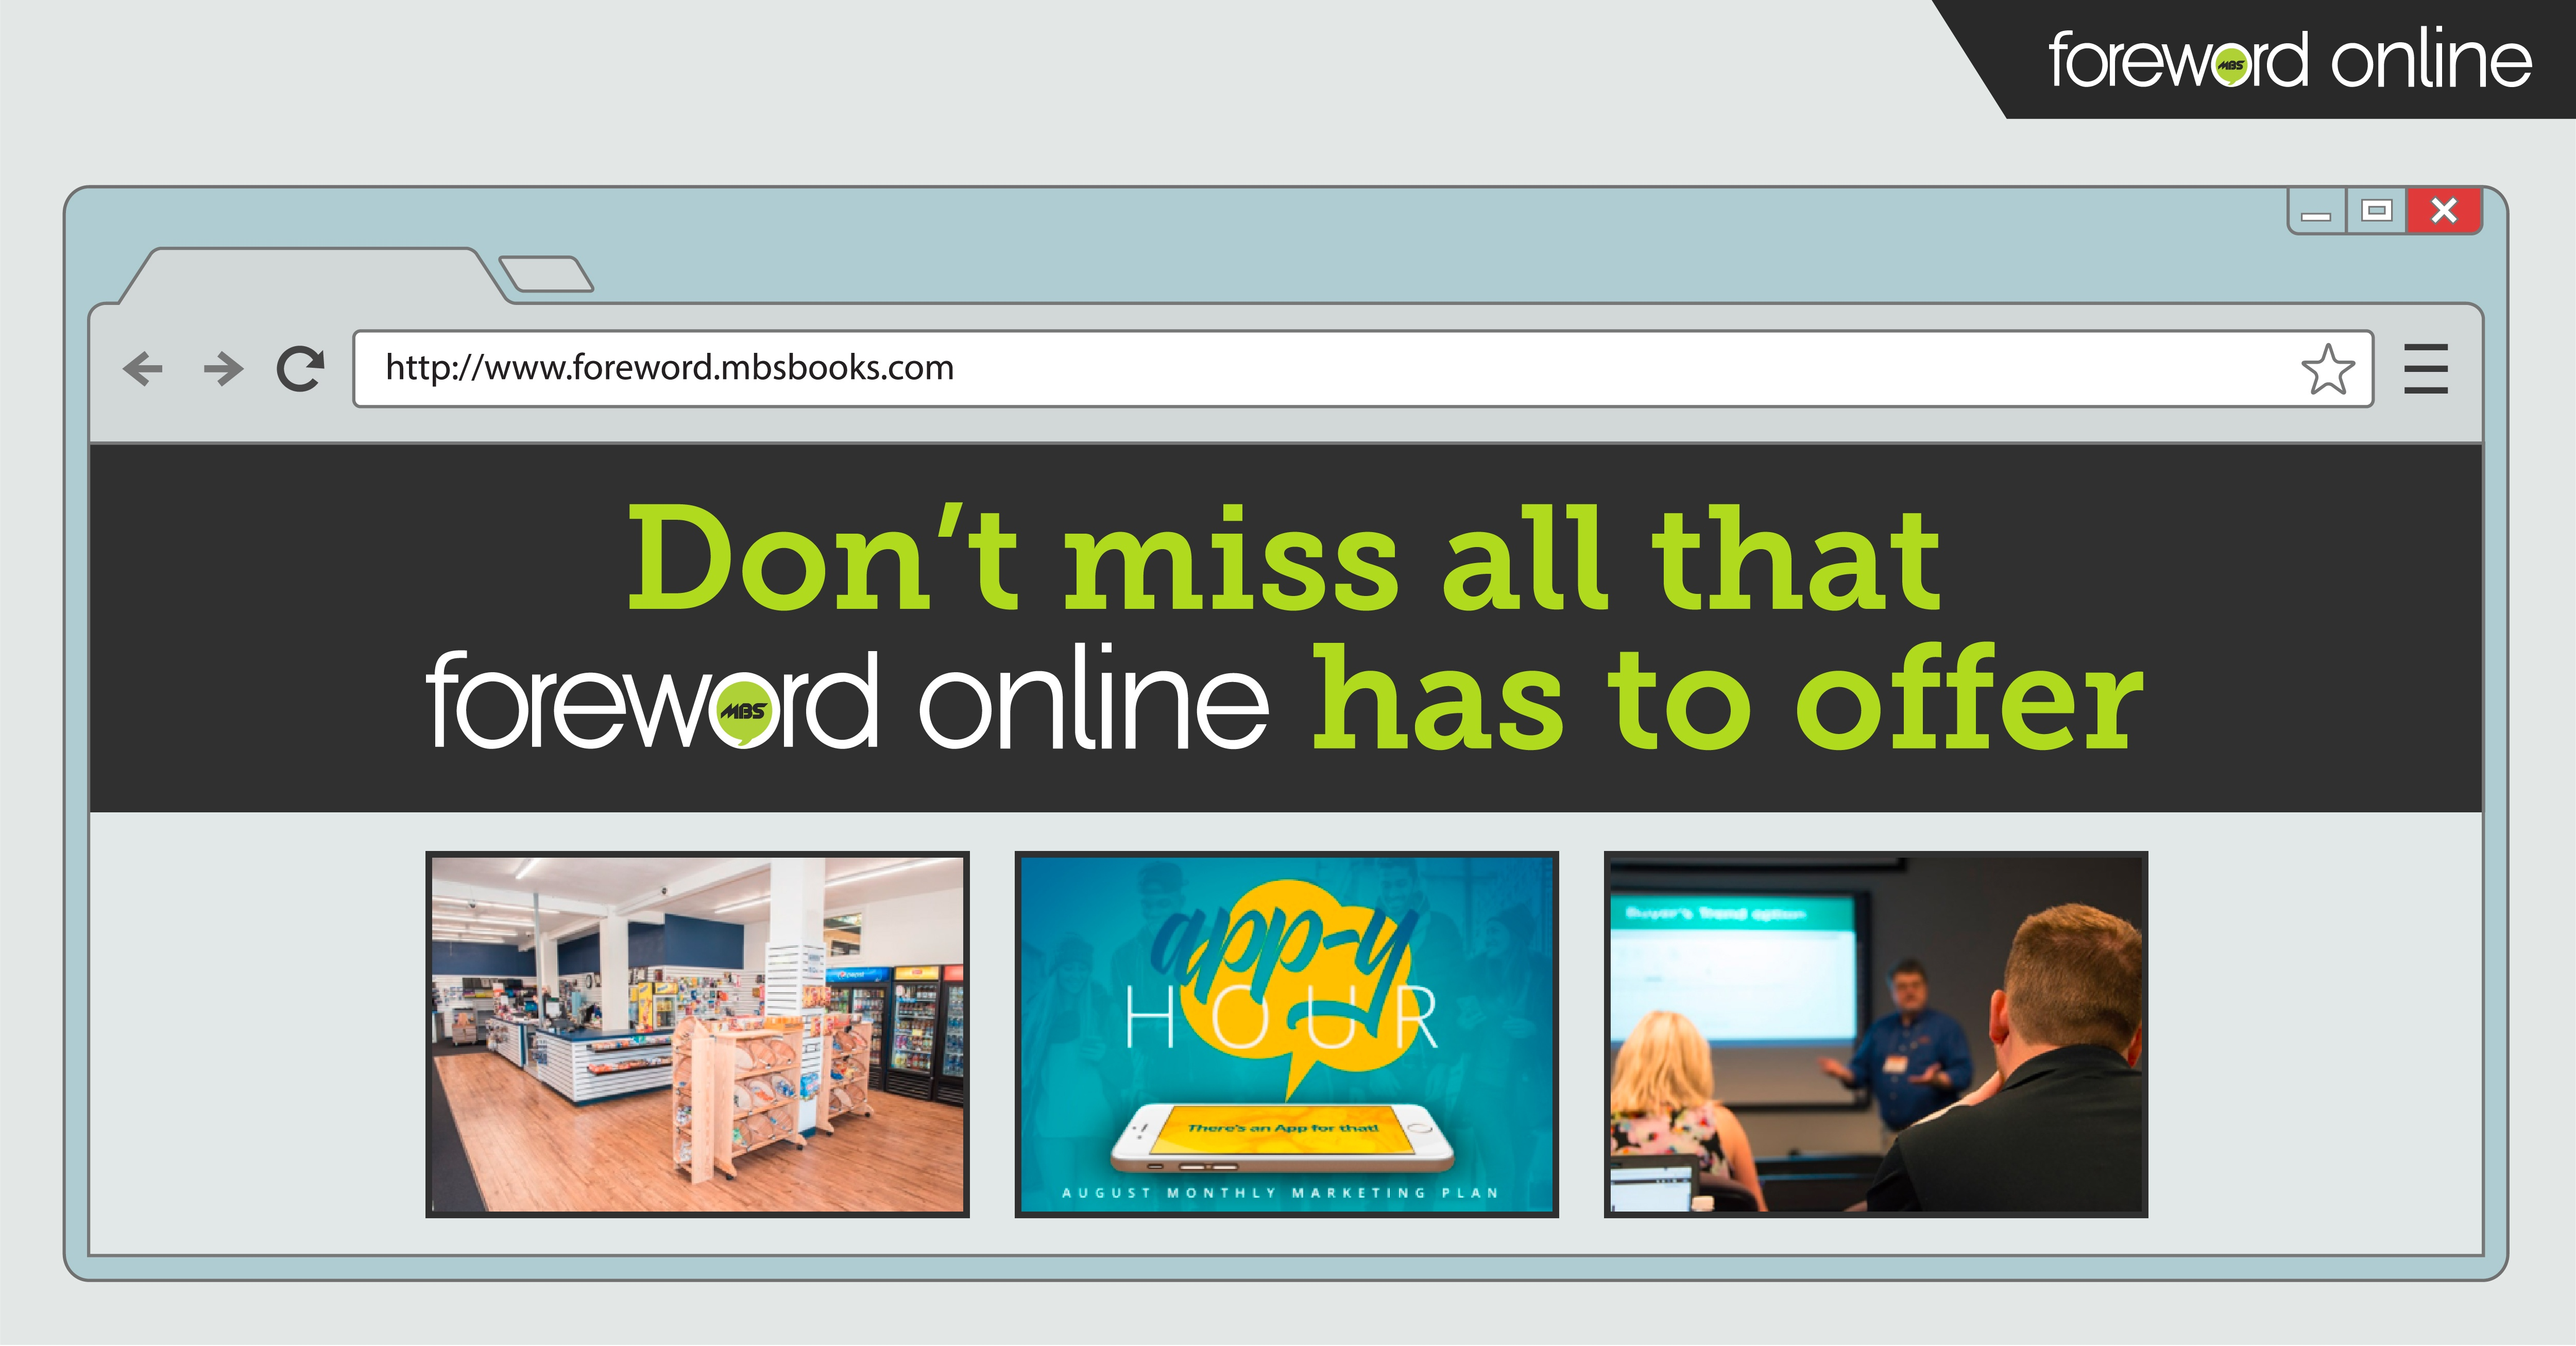 Don't Miss All That Foreword Online Has to Offer